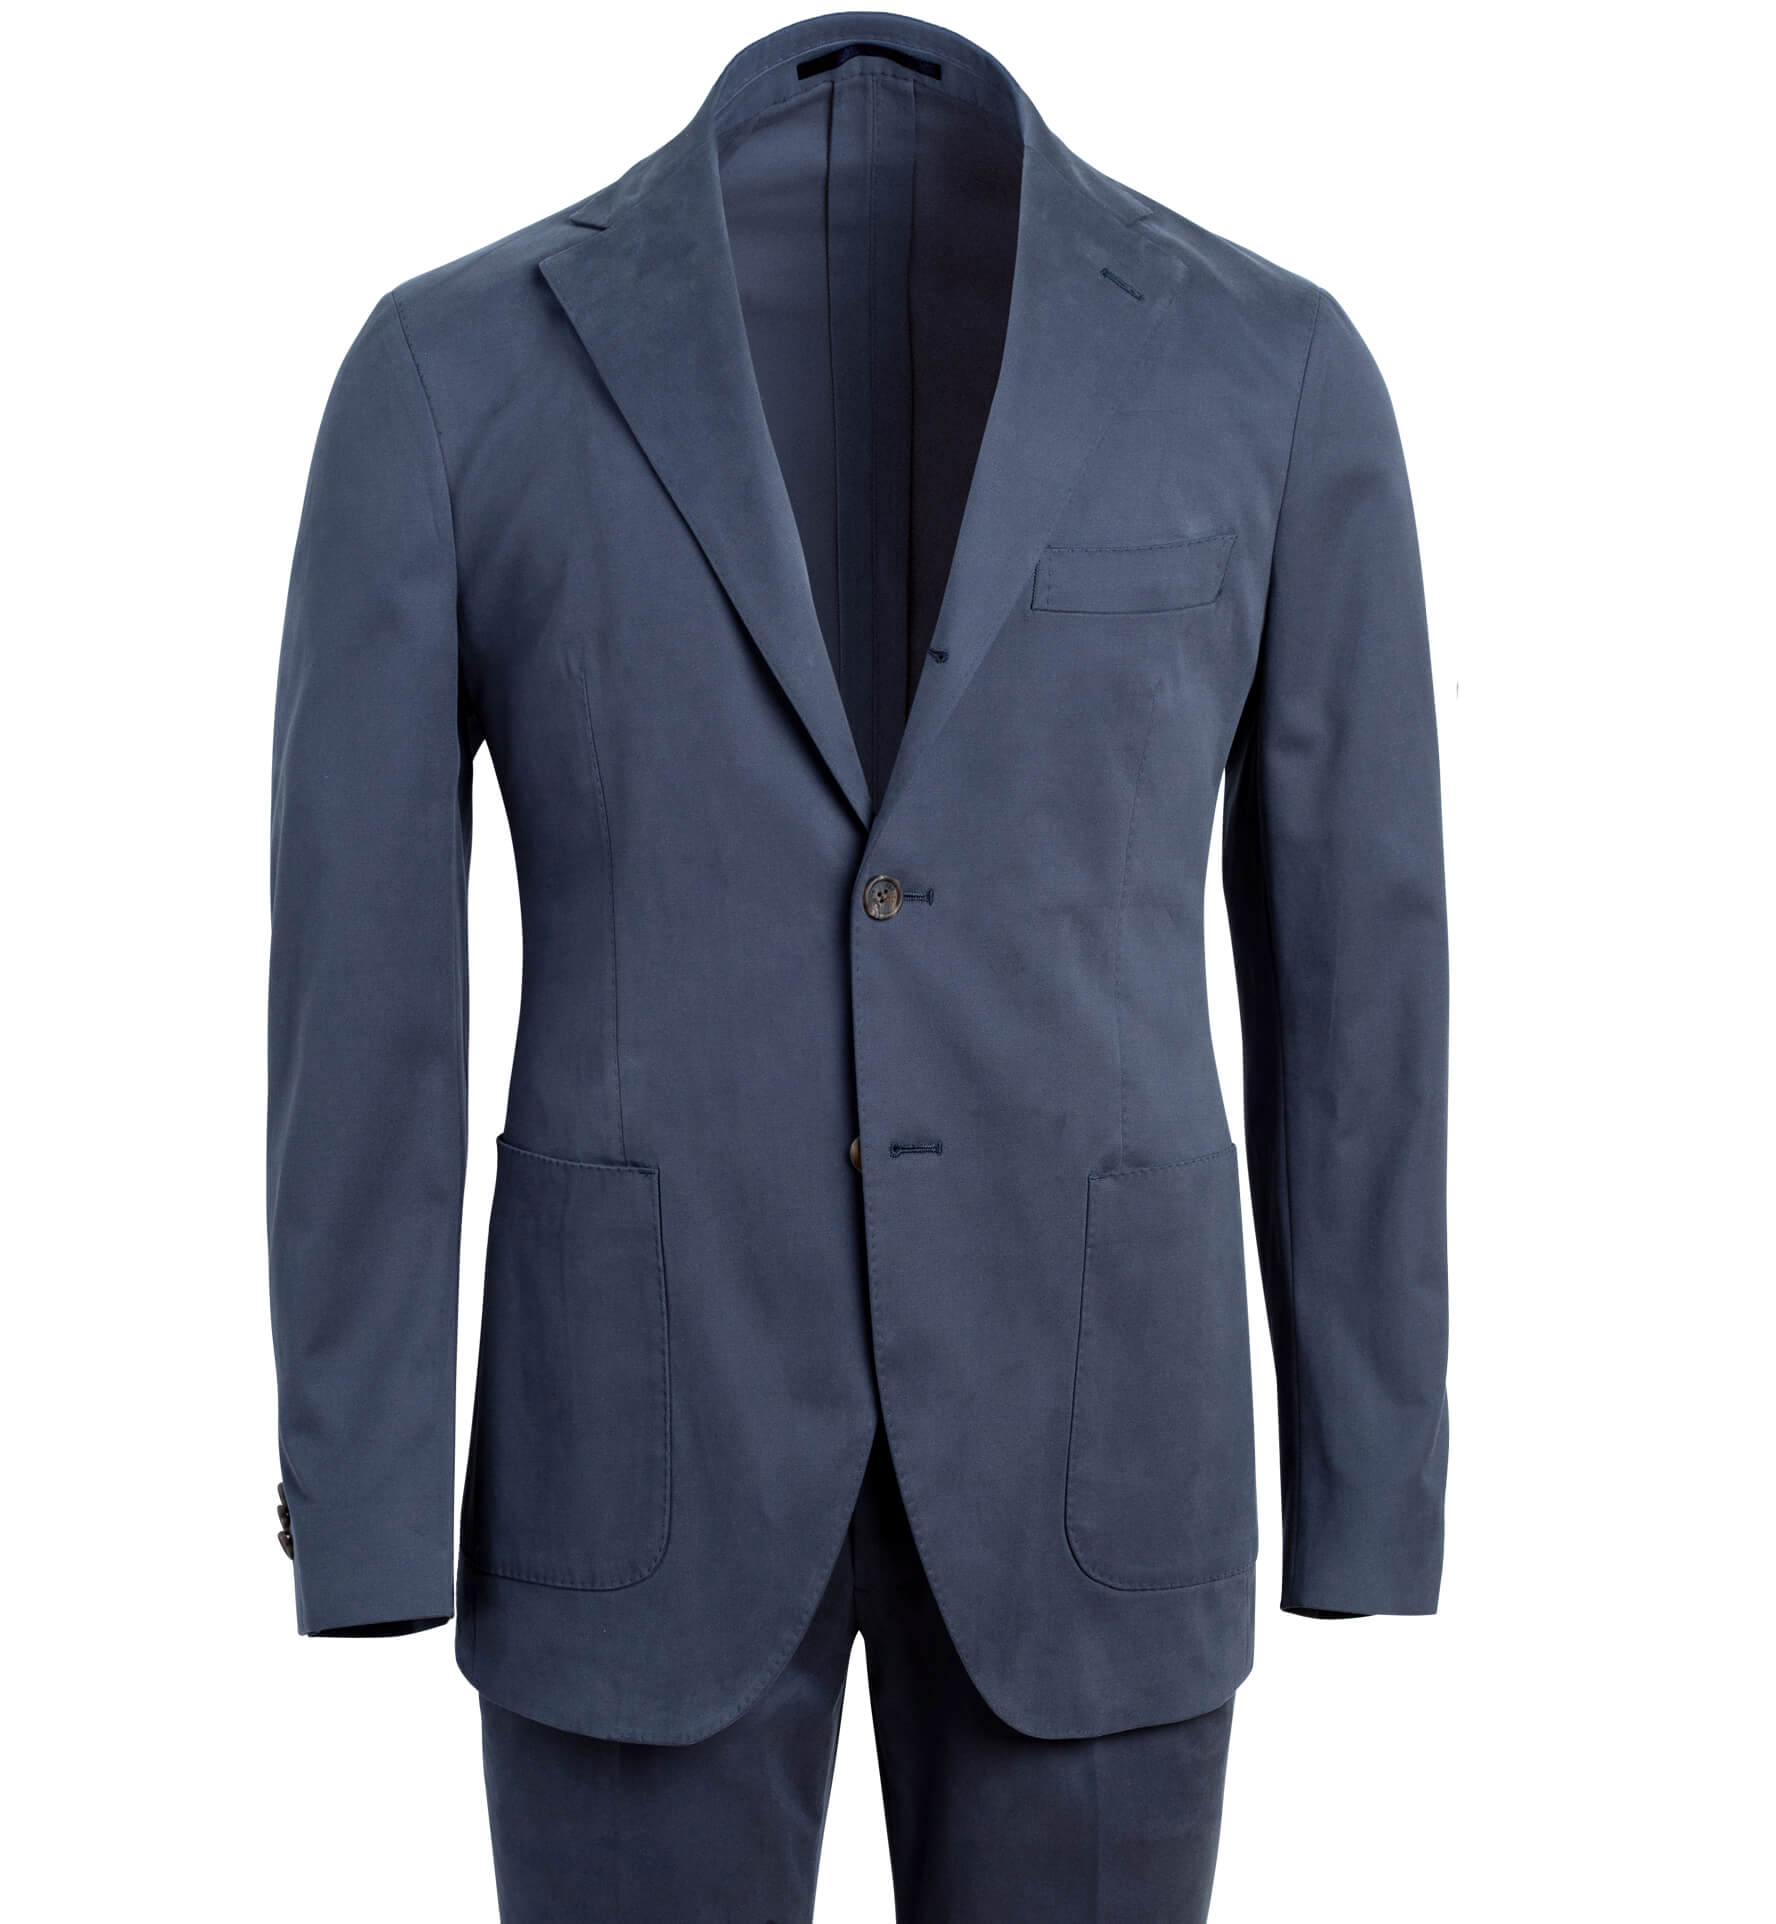 Zoom Image of Waverly Navy Stretch Cotton Suit